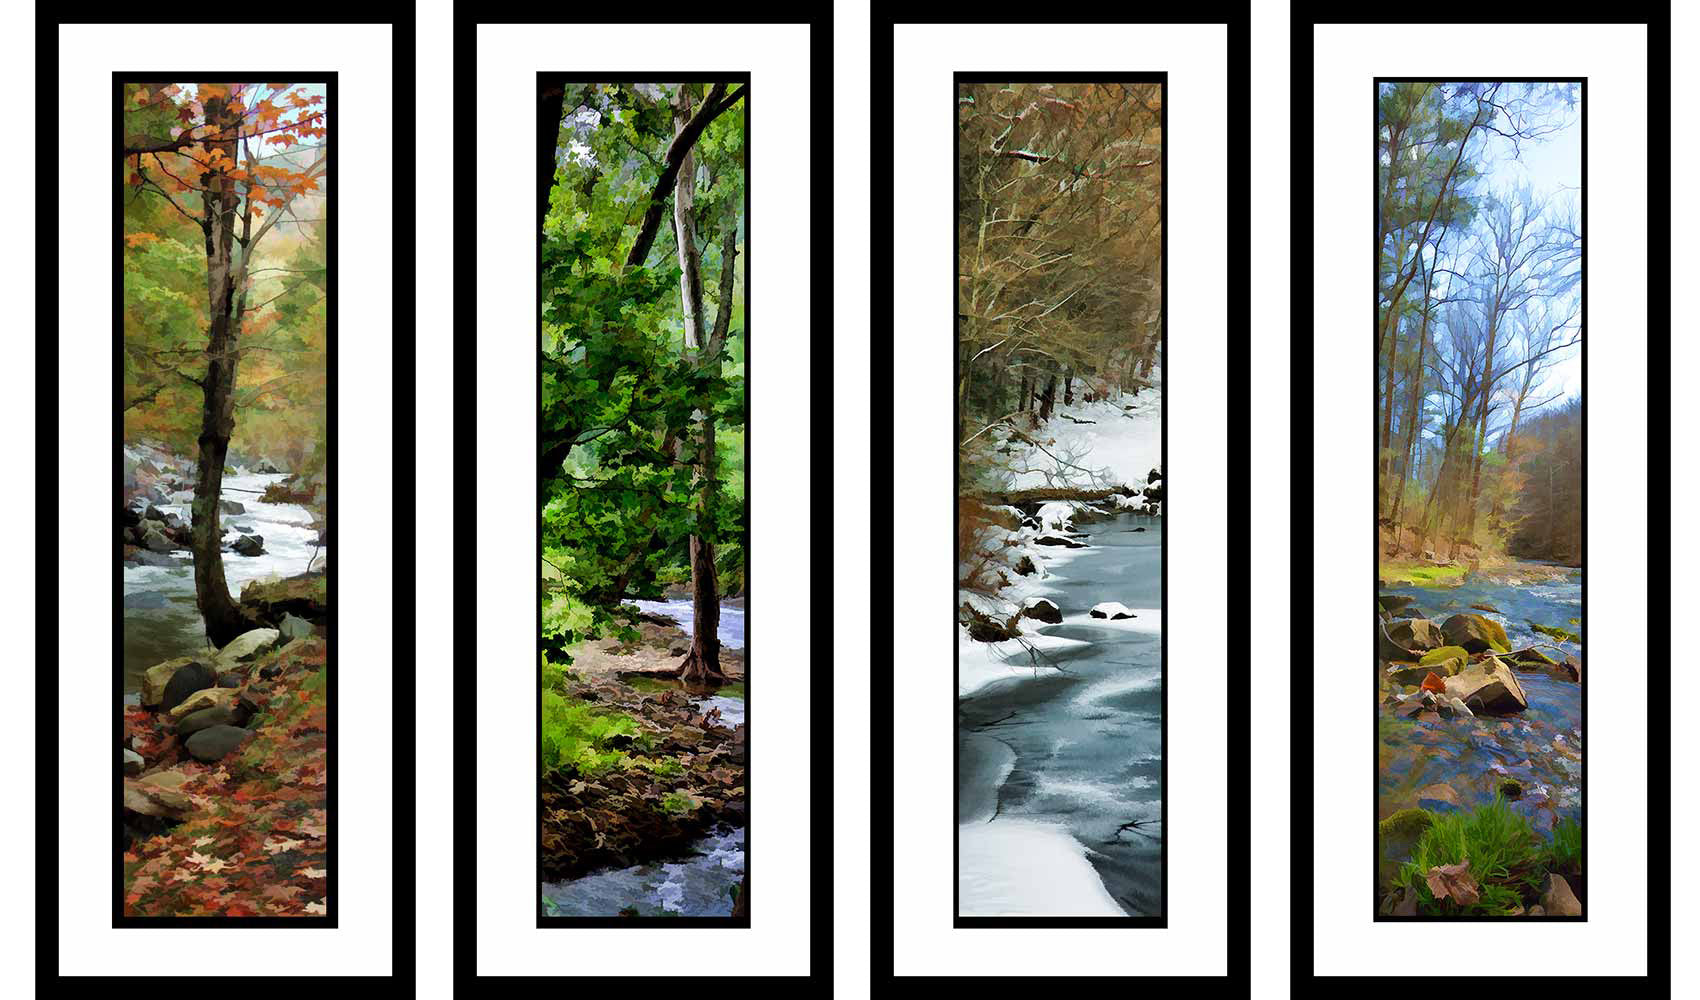 Seasonal Streams grouping by Alison Thomas of Serenity Scenes Photography and Digital Art.